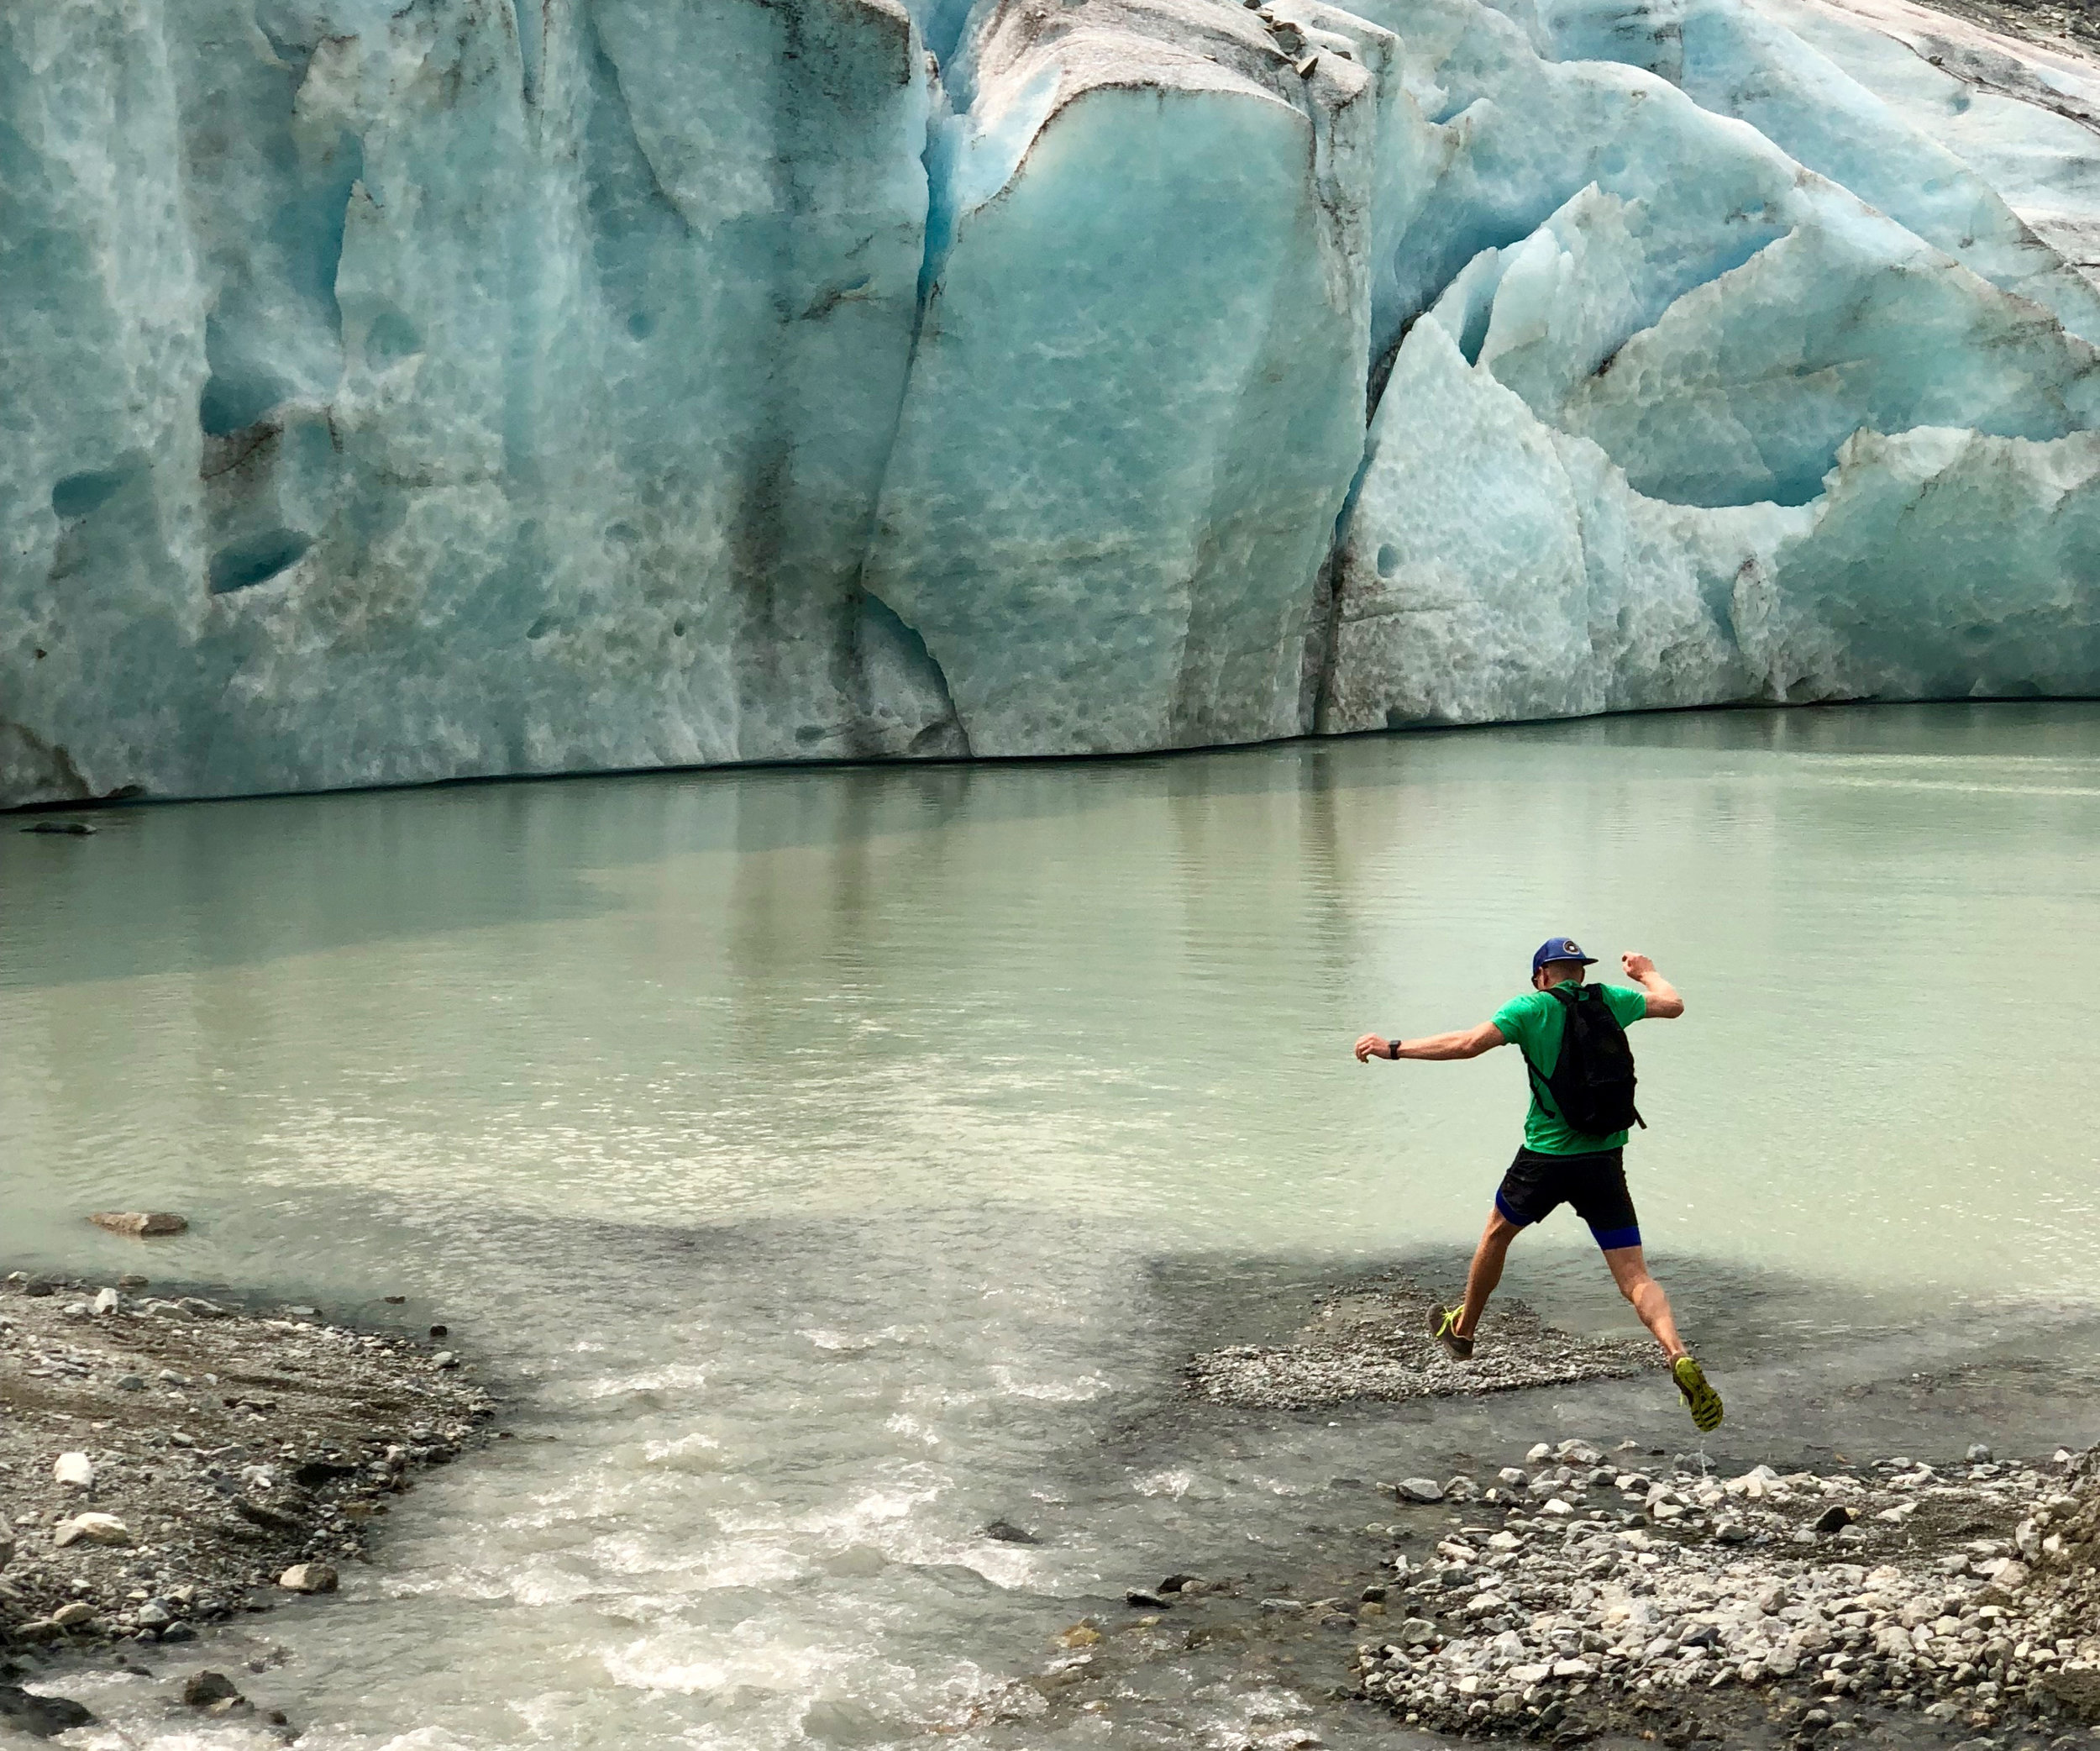 We hiked all the way to the glacier - maybe one of the last times to be up close to one with the way the world is going.